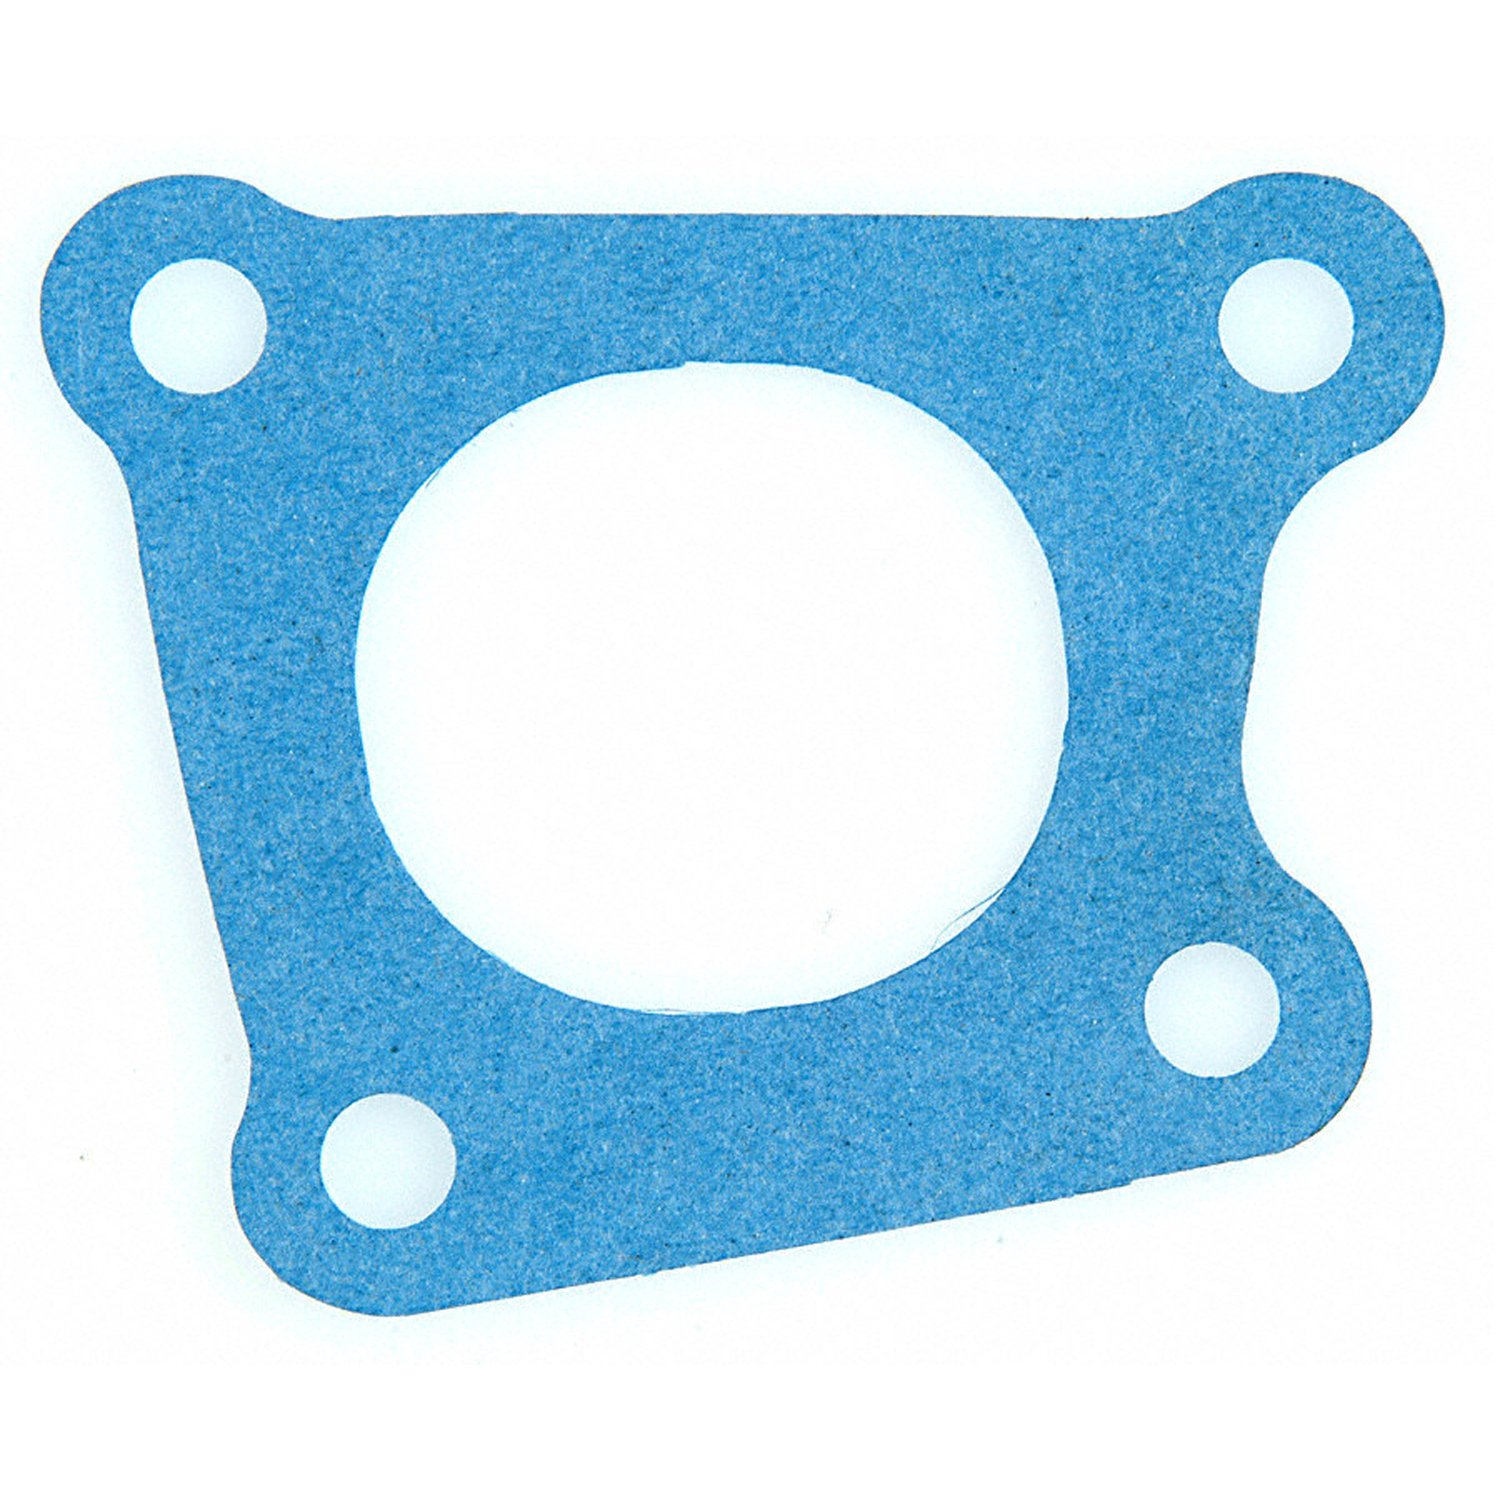 hight resolution of 2004 mitsubishi montero engine coolant outlet gasket fp 35693